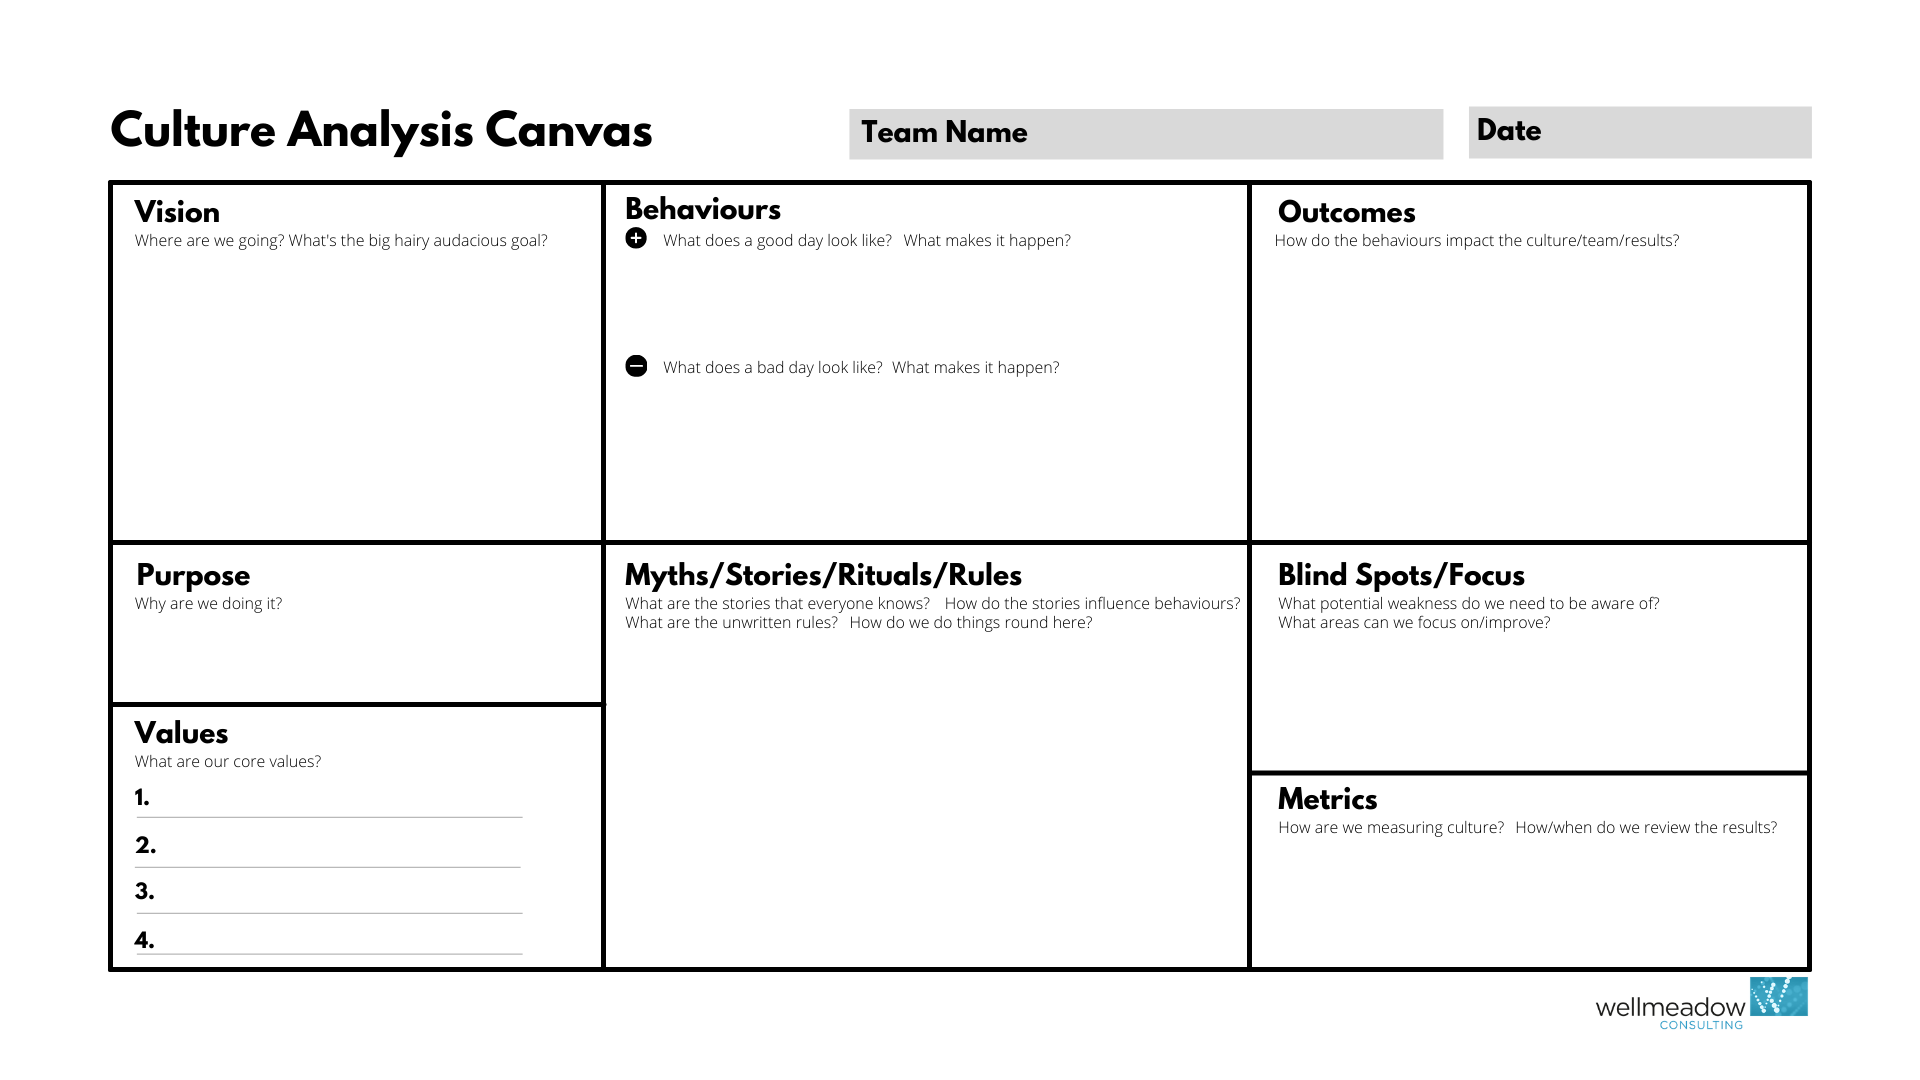 The Wellmeadow Culture Analysis Canvas